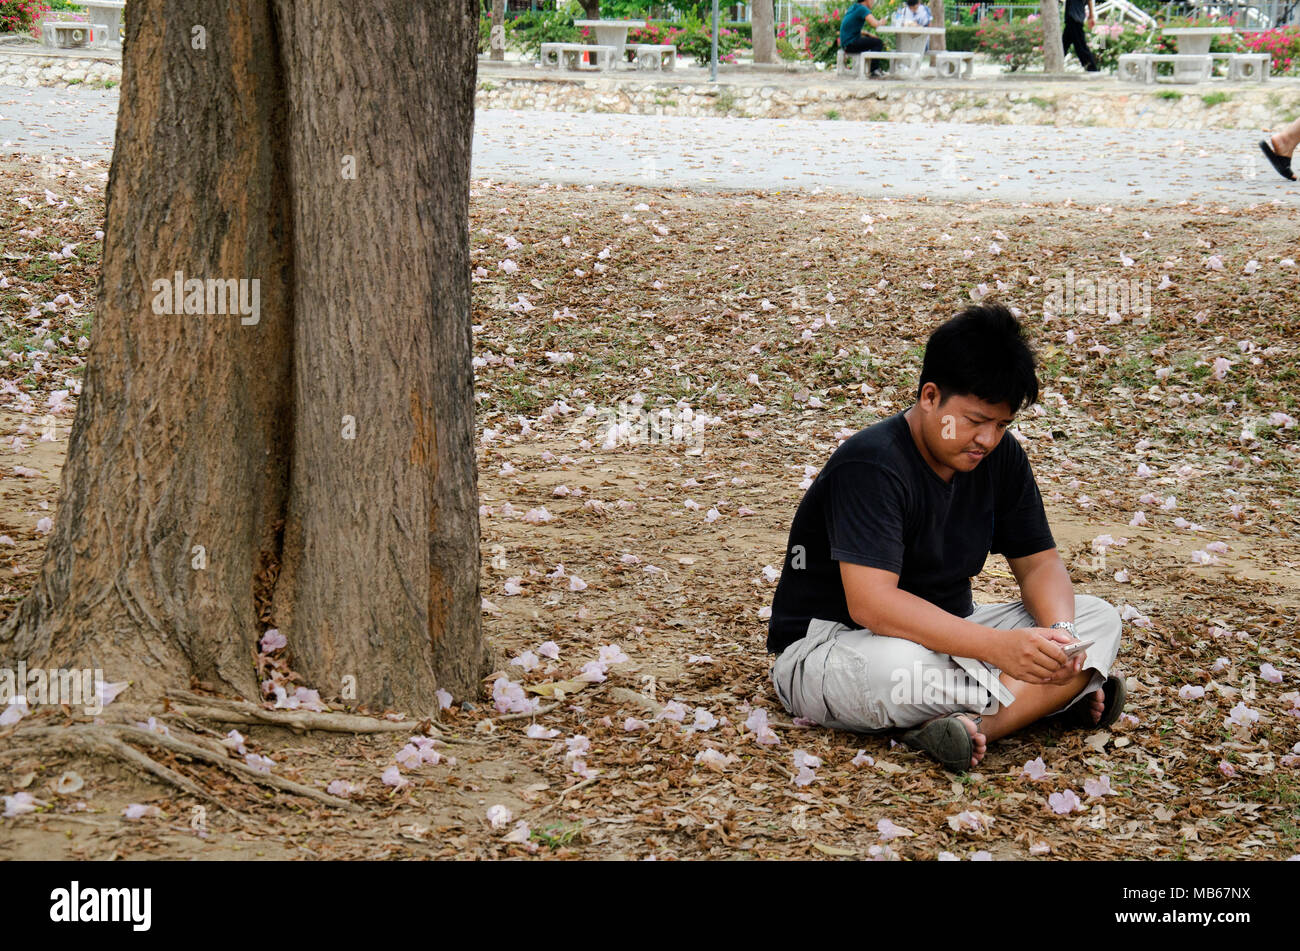 Man Reading Book Under Tree Stock Photos & Man Reading Book Under ...